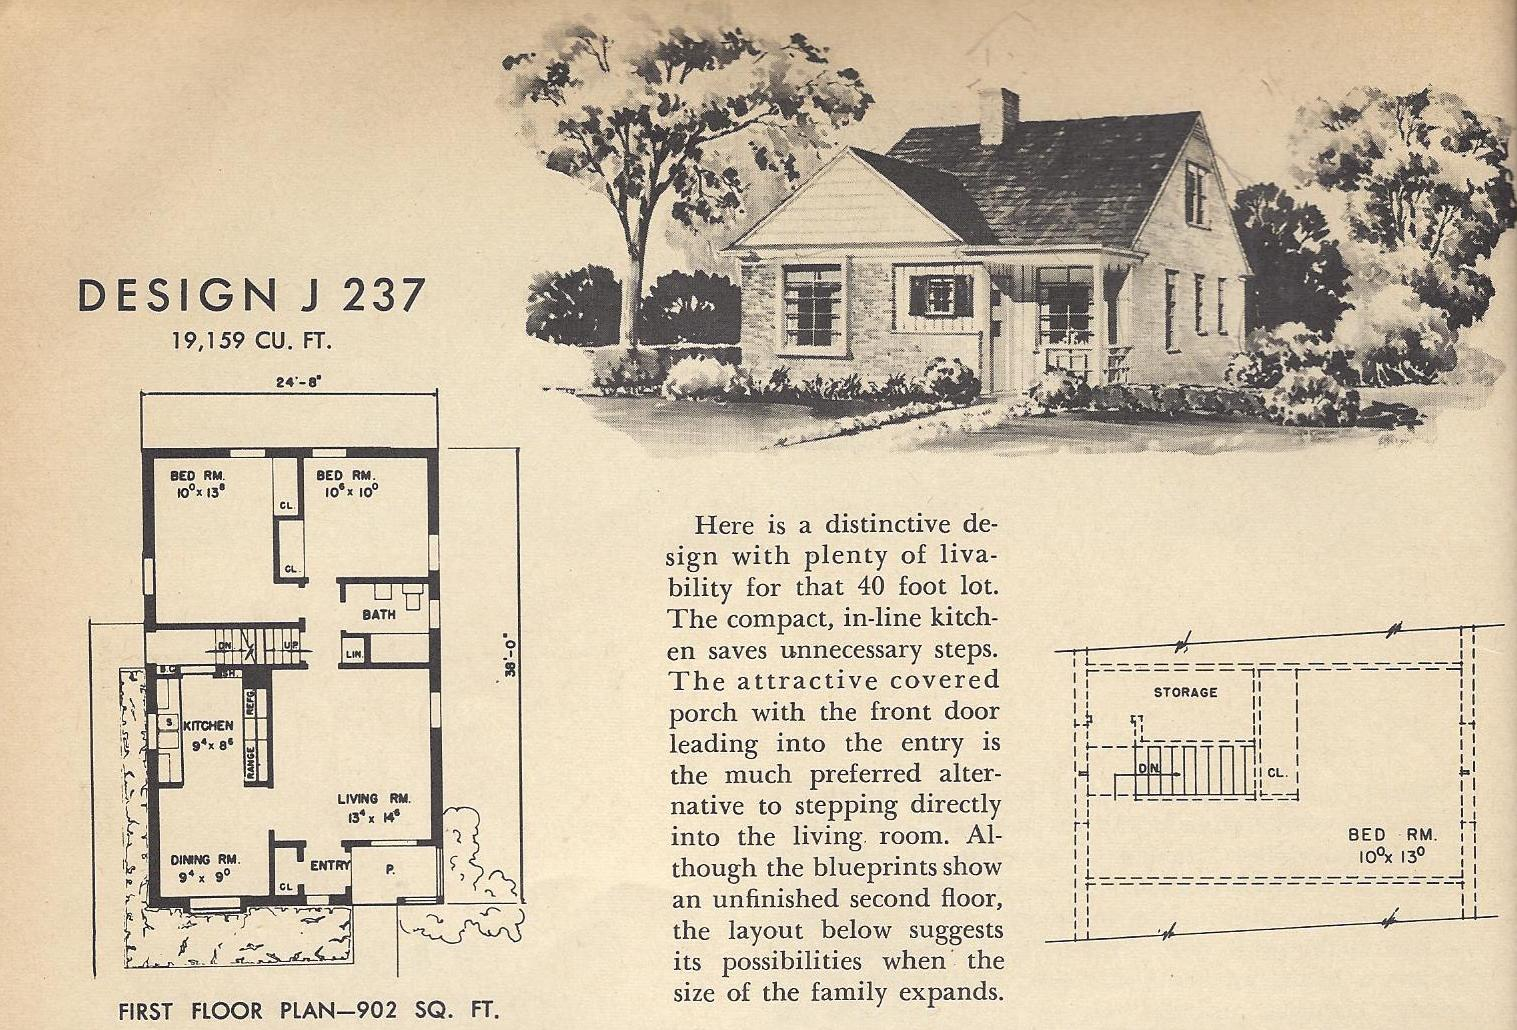 Vintage house plans j237 antique alter ego Vintage home architecture